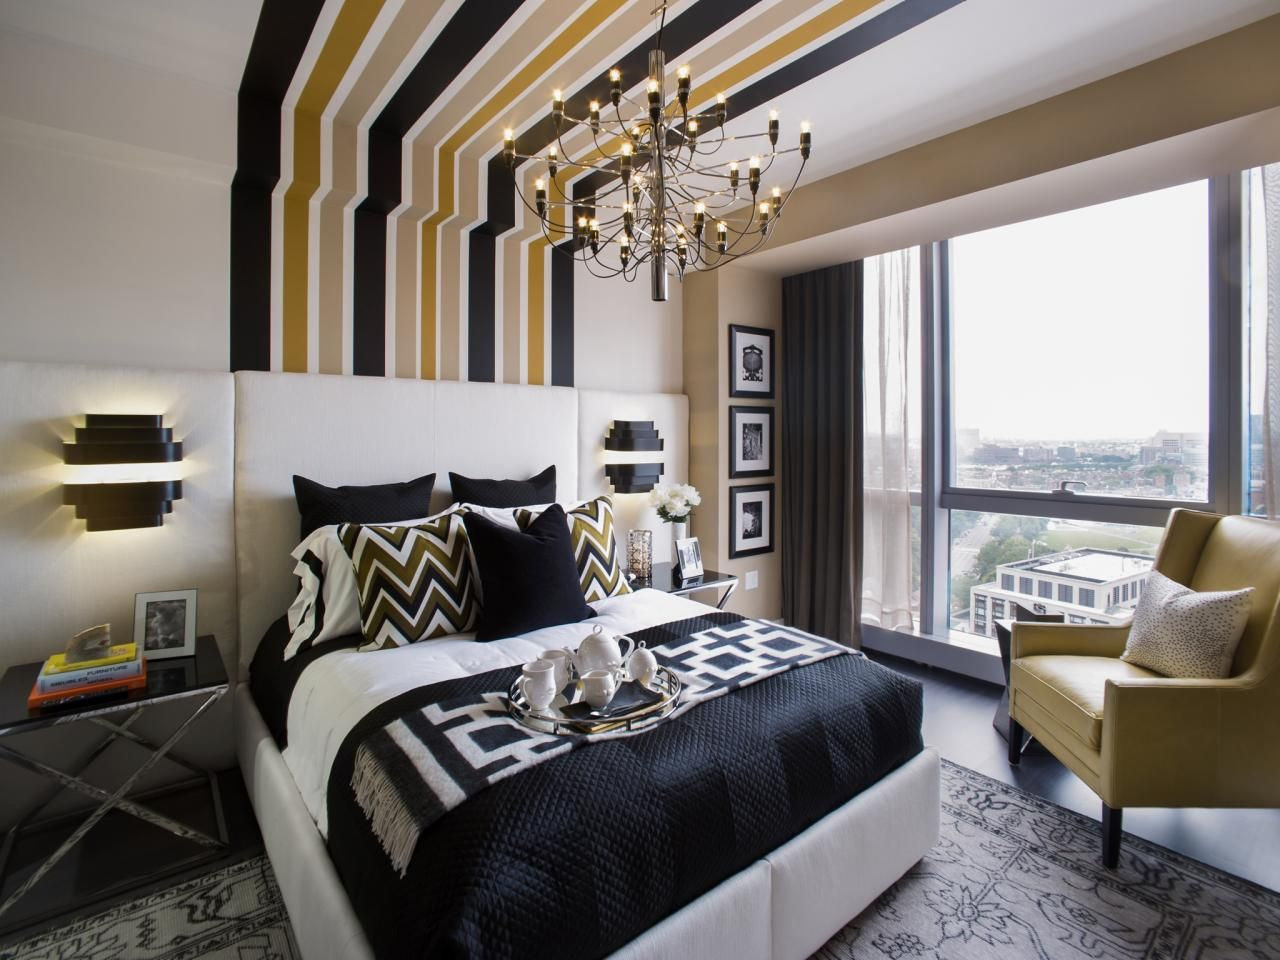 1000  images about Master Bedroom Ideas on Pinterest   Home remodeling   Upholstered beds and Interior design images. 1000  images about Master Bedroom Ideas on Pinterest   Home